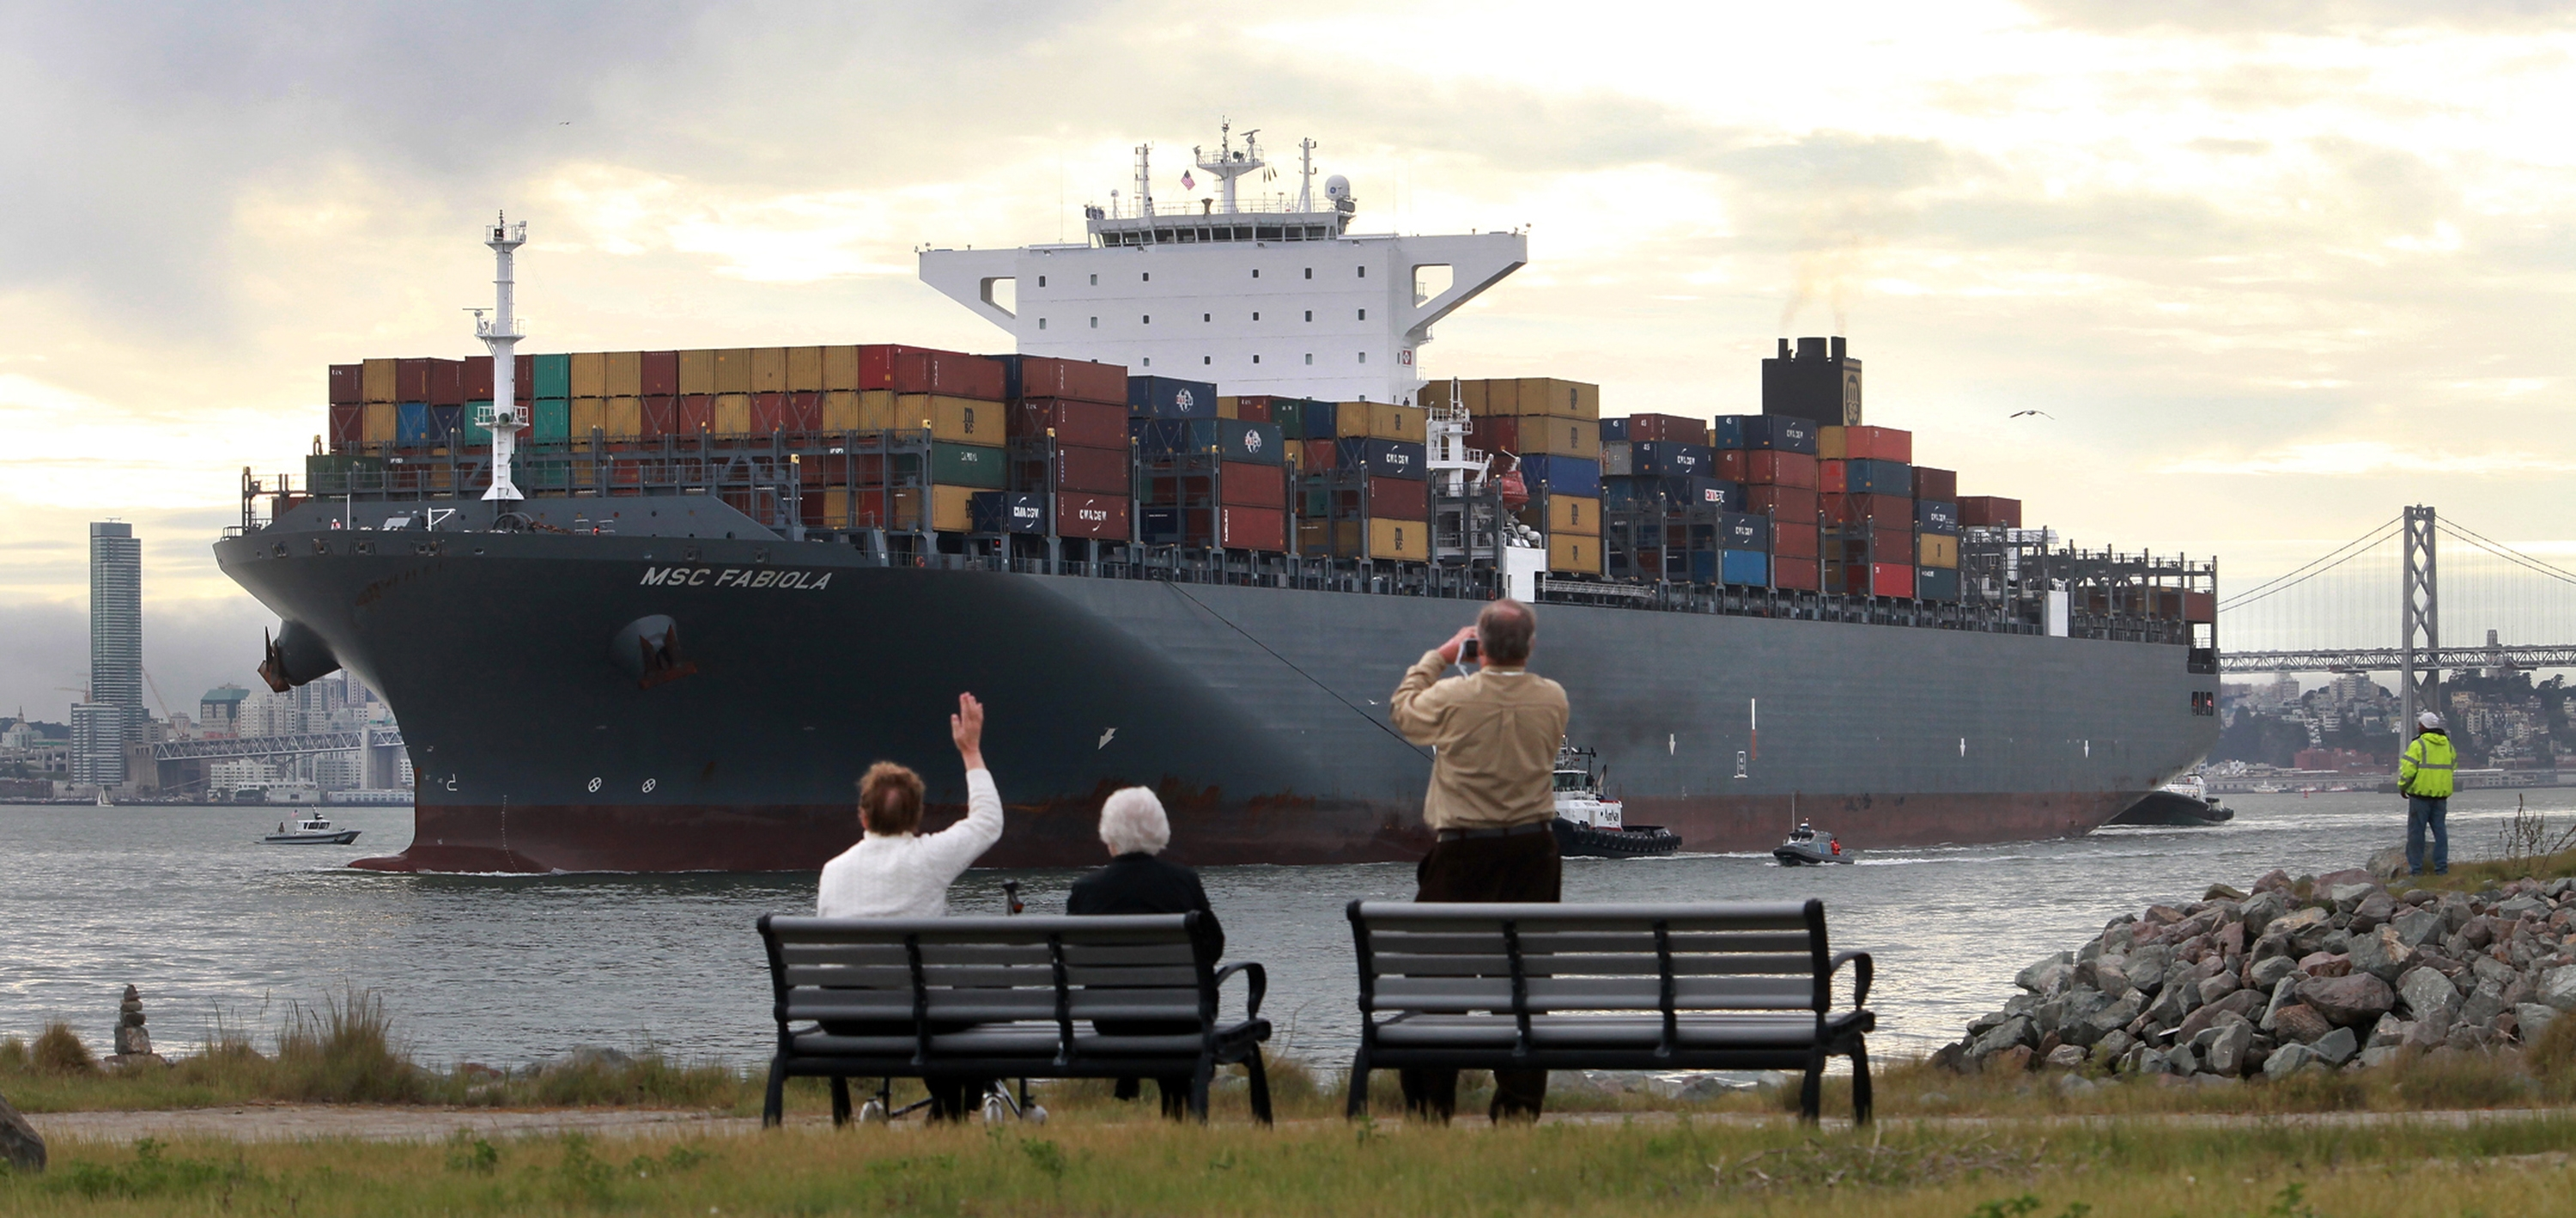 Spectators line the shores of the Oakland Alameda Estuary at Middle Harbor Shoreline Park in Oakland, Calif., to watch the MSC Fabiola container ship make its way to the dock at the Port of Oakland. (Laura A. Oda/Bay Area News Group/TNS)